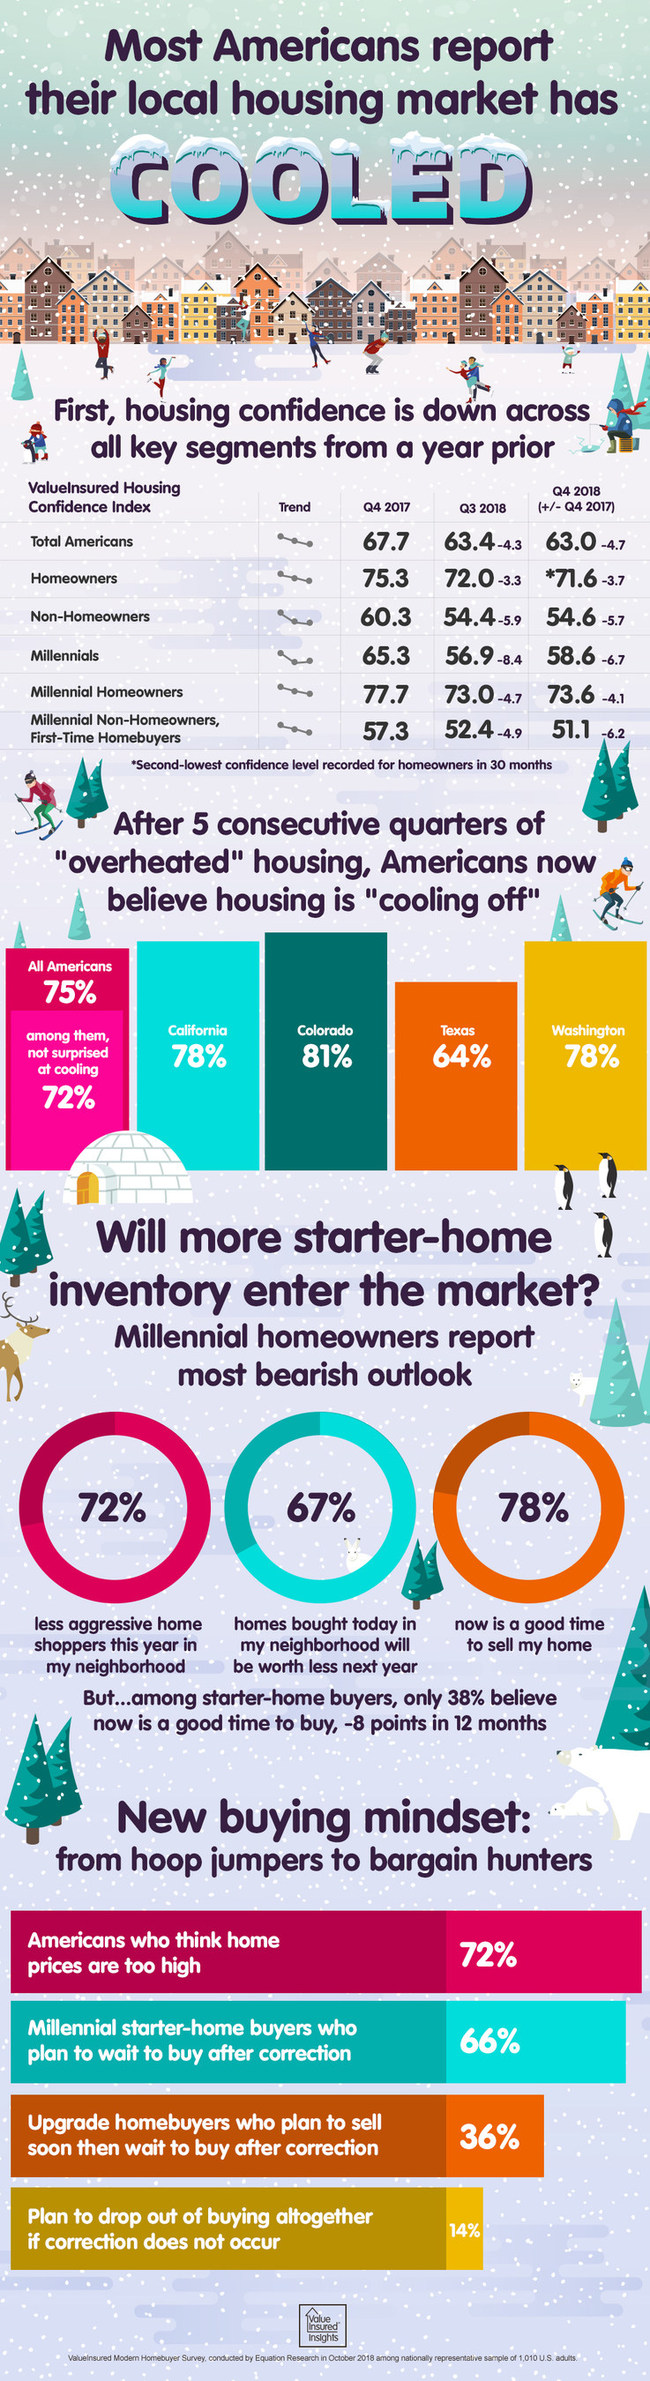 3 in 4 Americans report their housing market has cooled